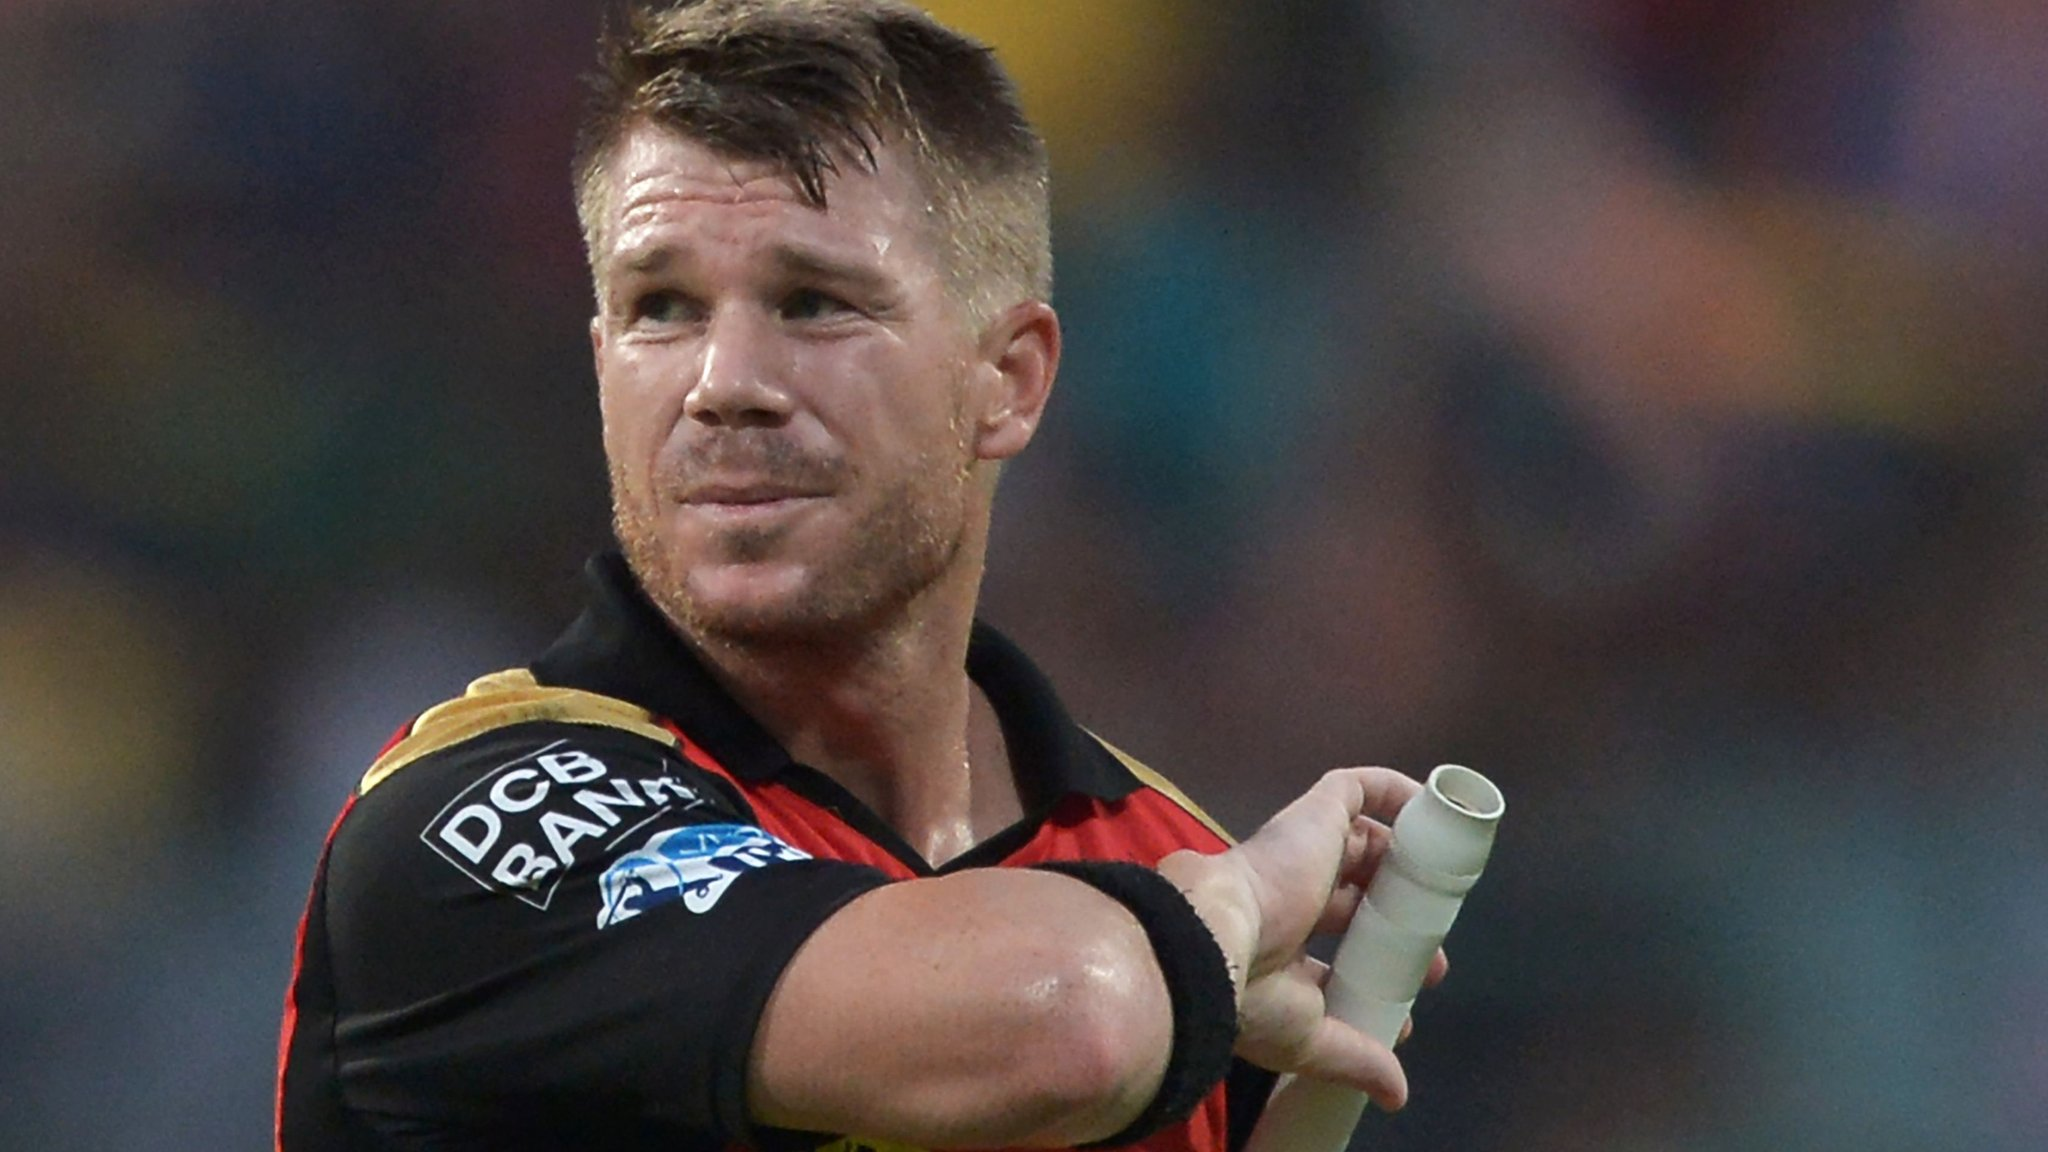 Australia's Warner scores 85 on IPL return